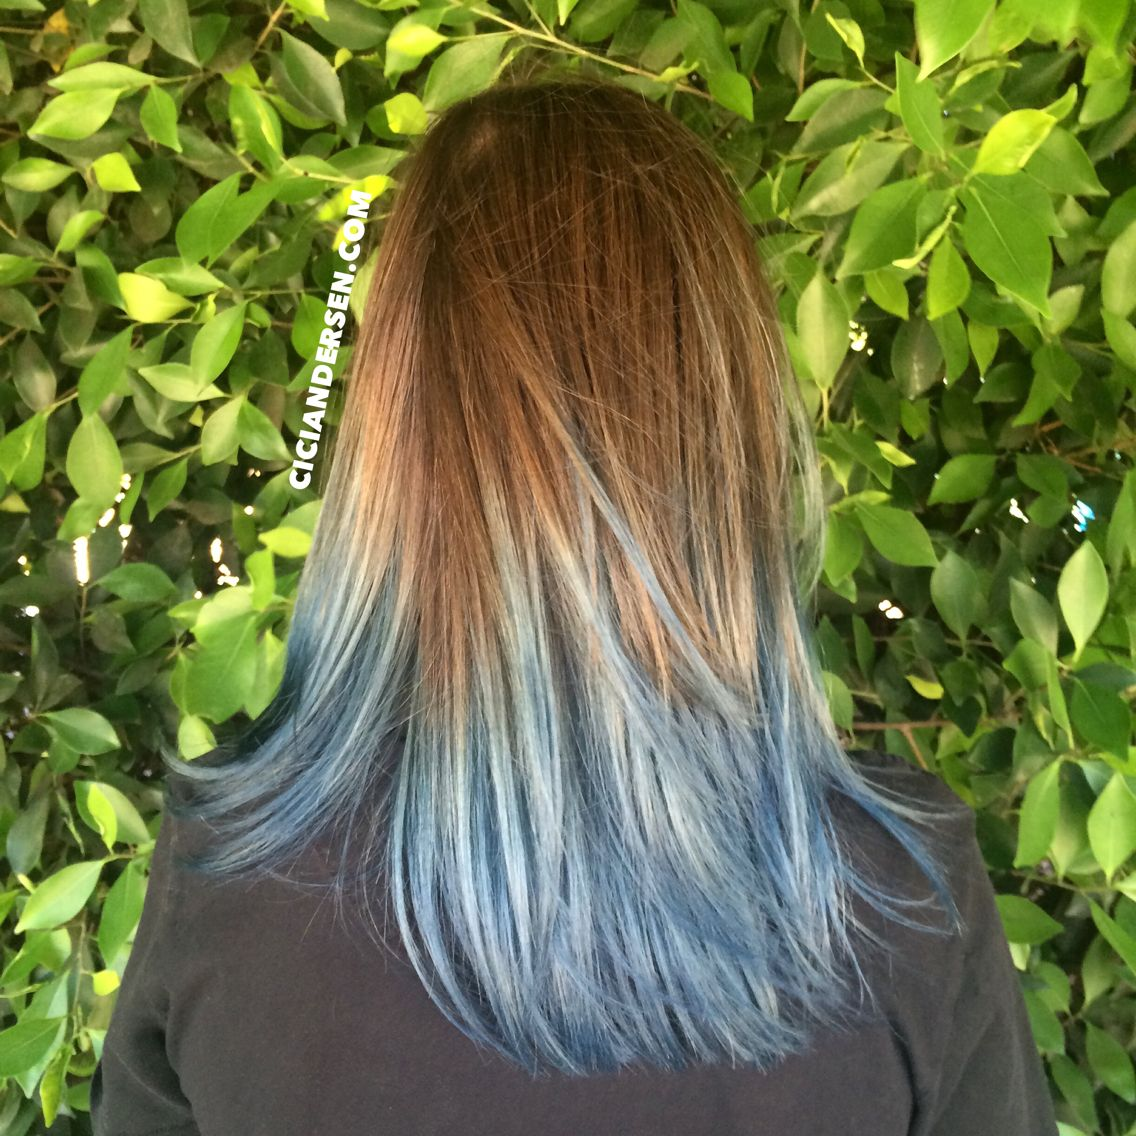 Brown To Light Blue Ombr 233 Hair Looks Almost Blue Silver